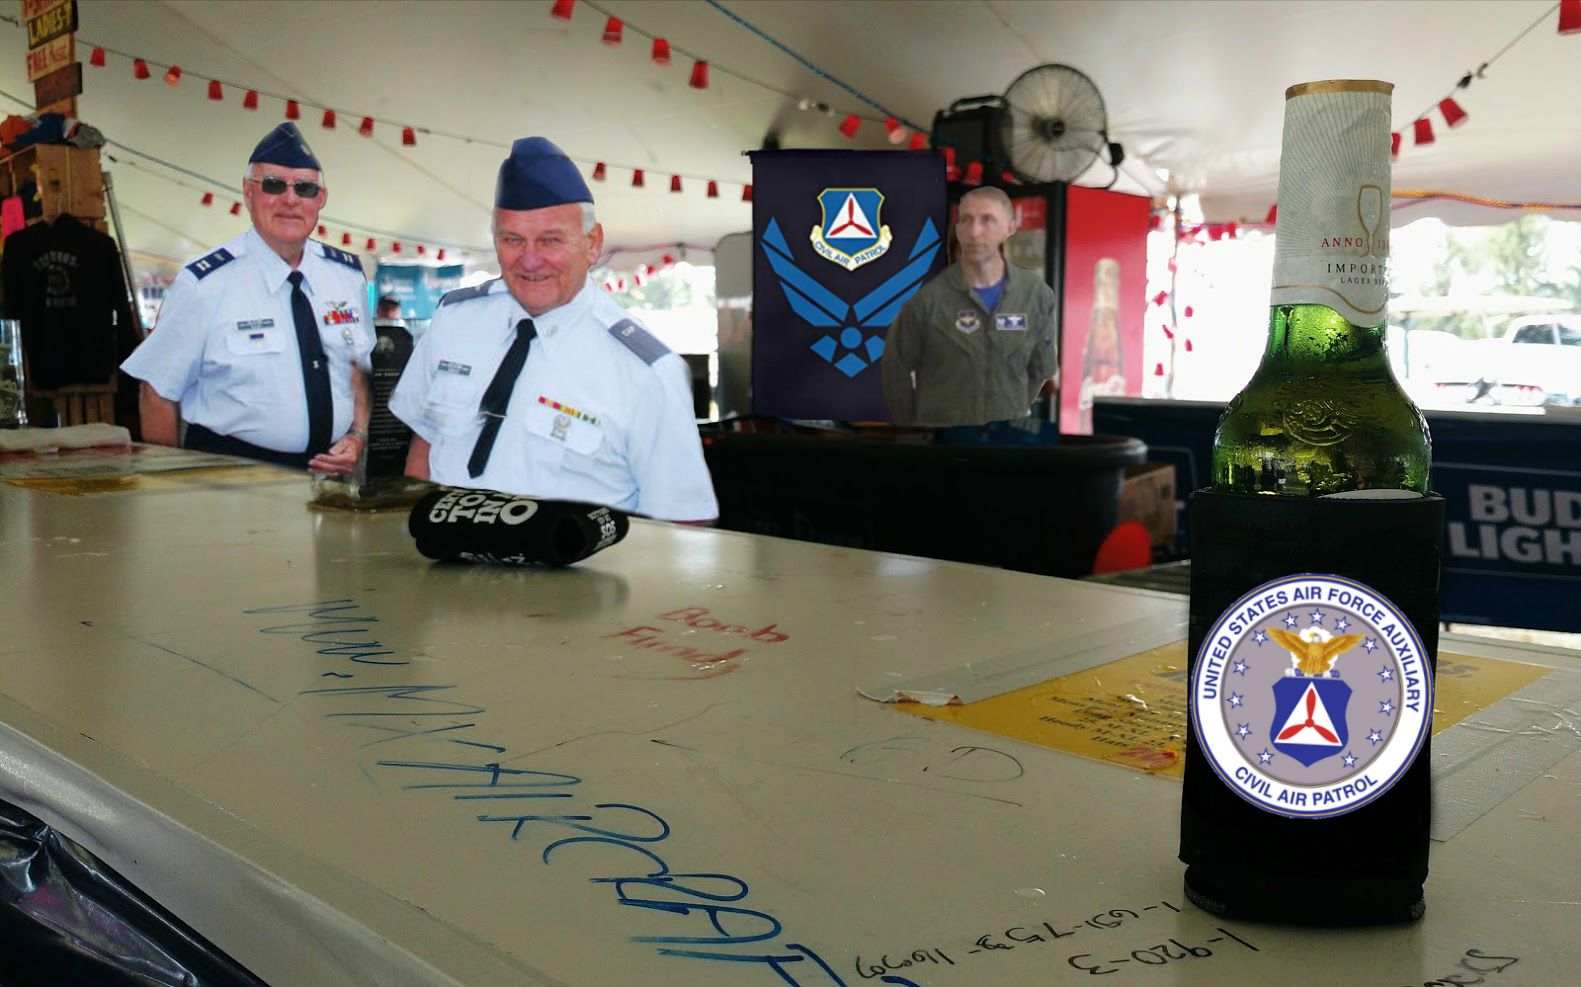 EAA Airventure Oshkosh SOS Tent bikini ladies replaced with Civil Air Patrol at the bar. OSH is an annual aviation event hosted for pilots and with airshows.